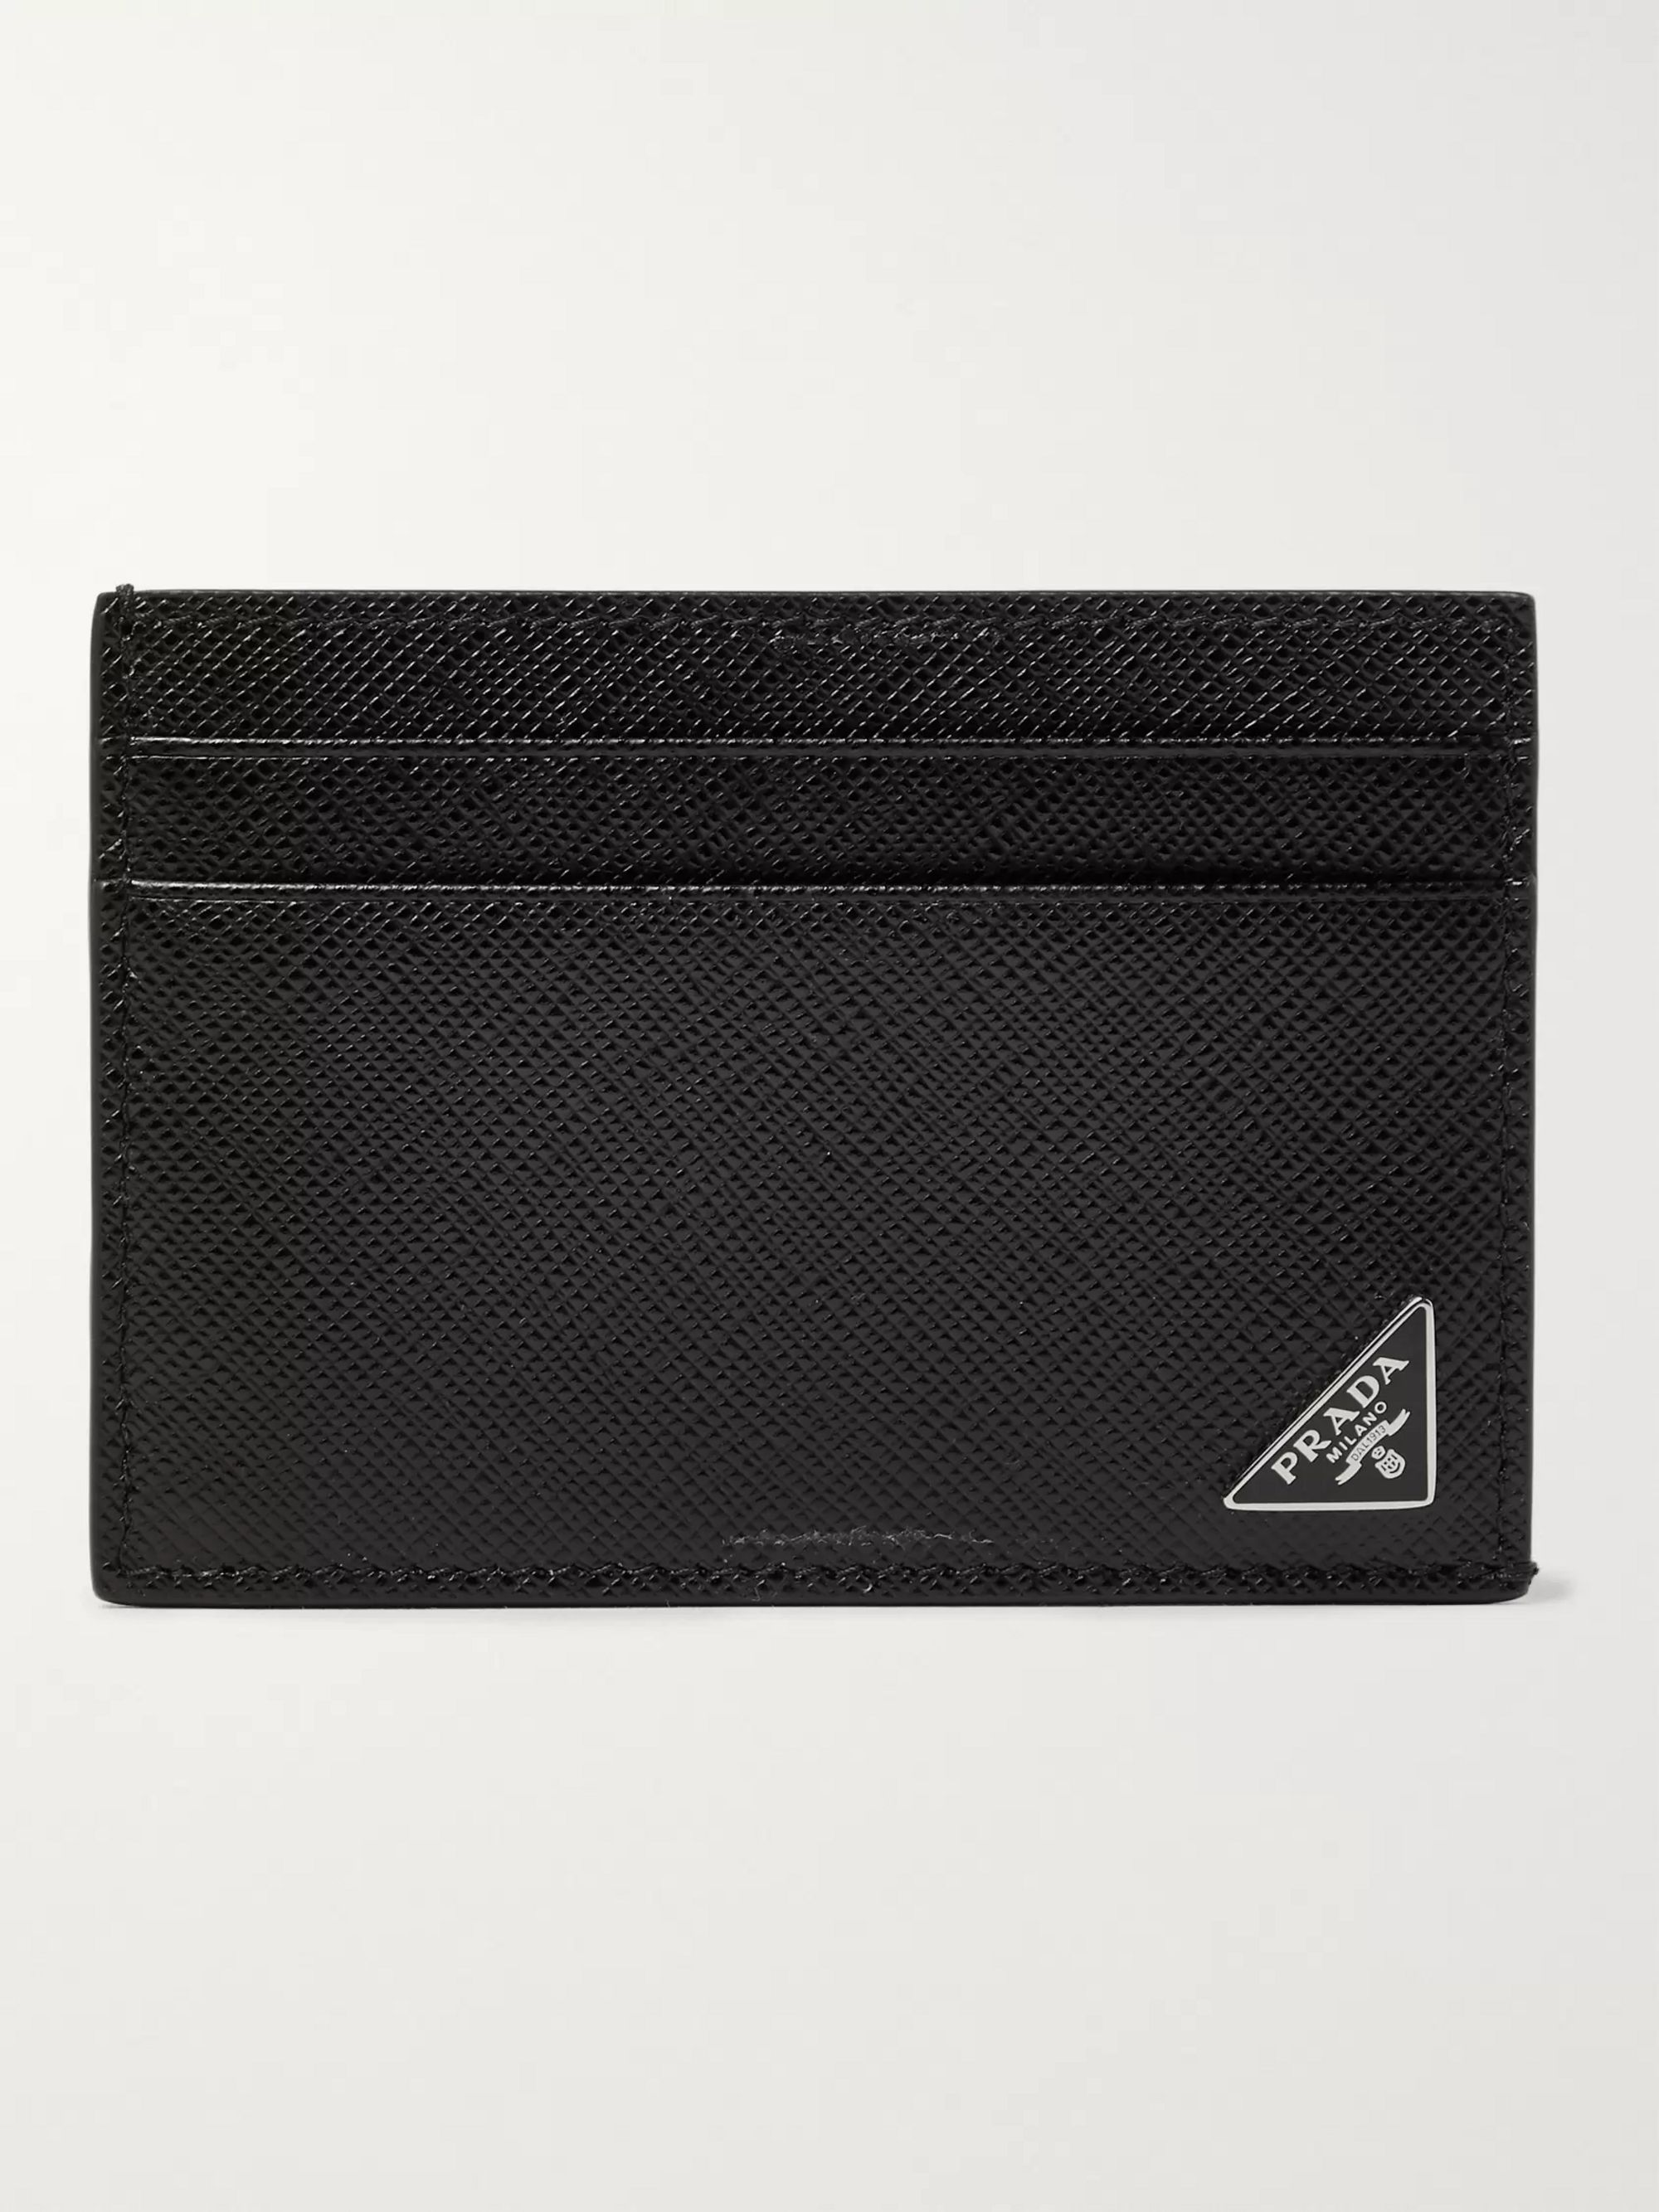 Prada Logo-Appliquéd Saffiano Leather Cardholder and Money Clip